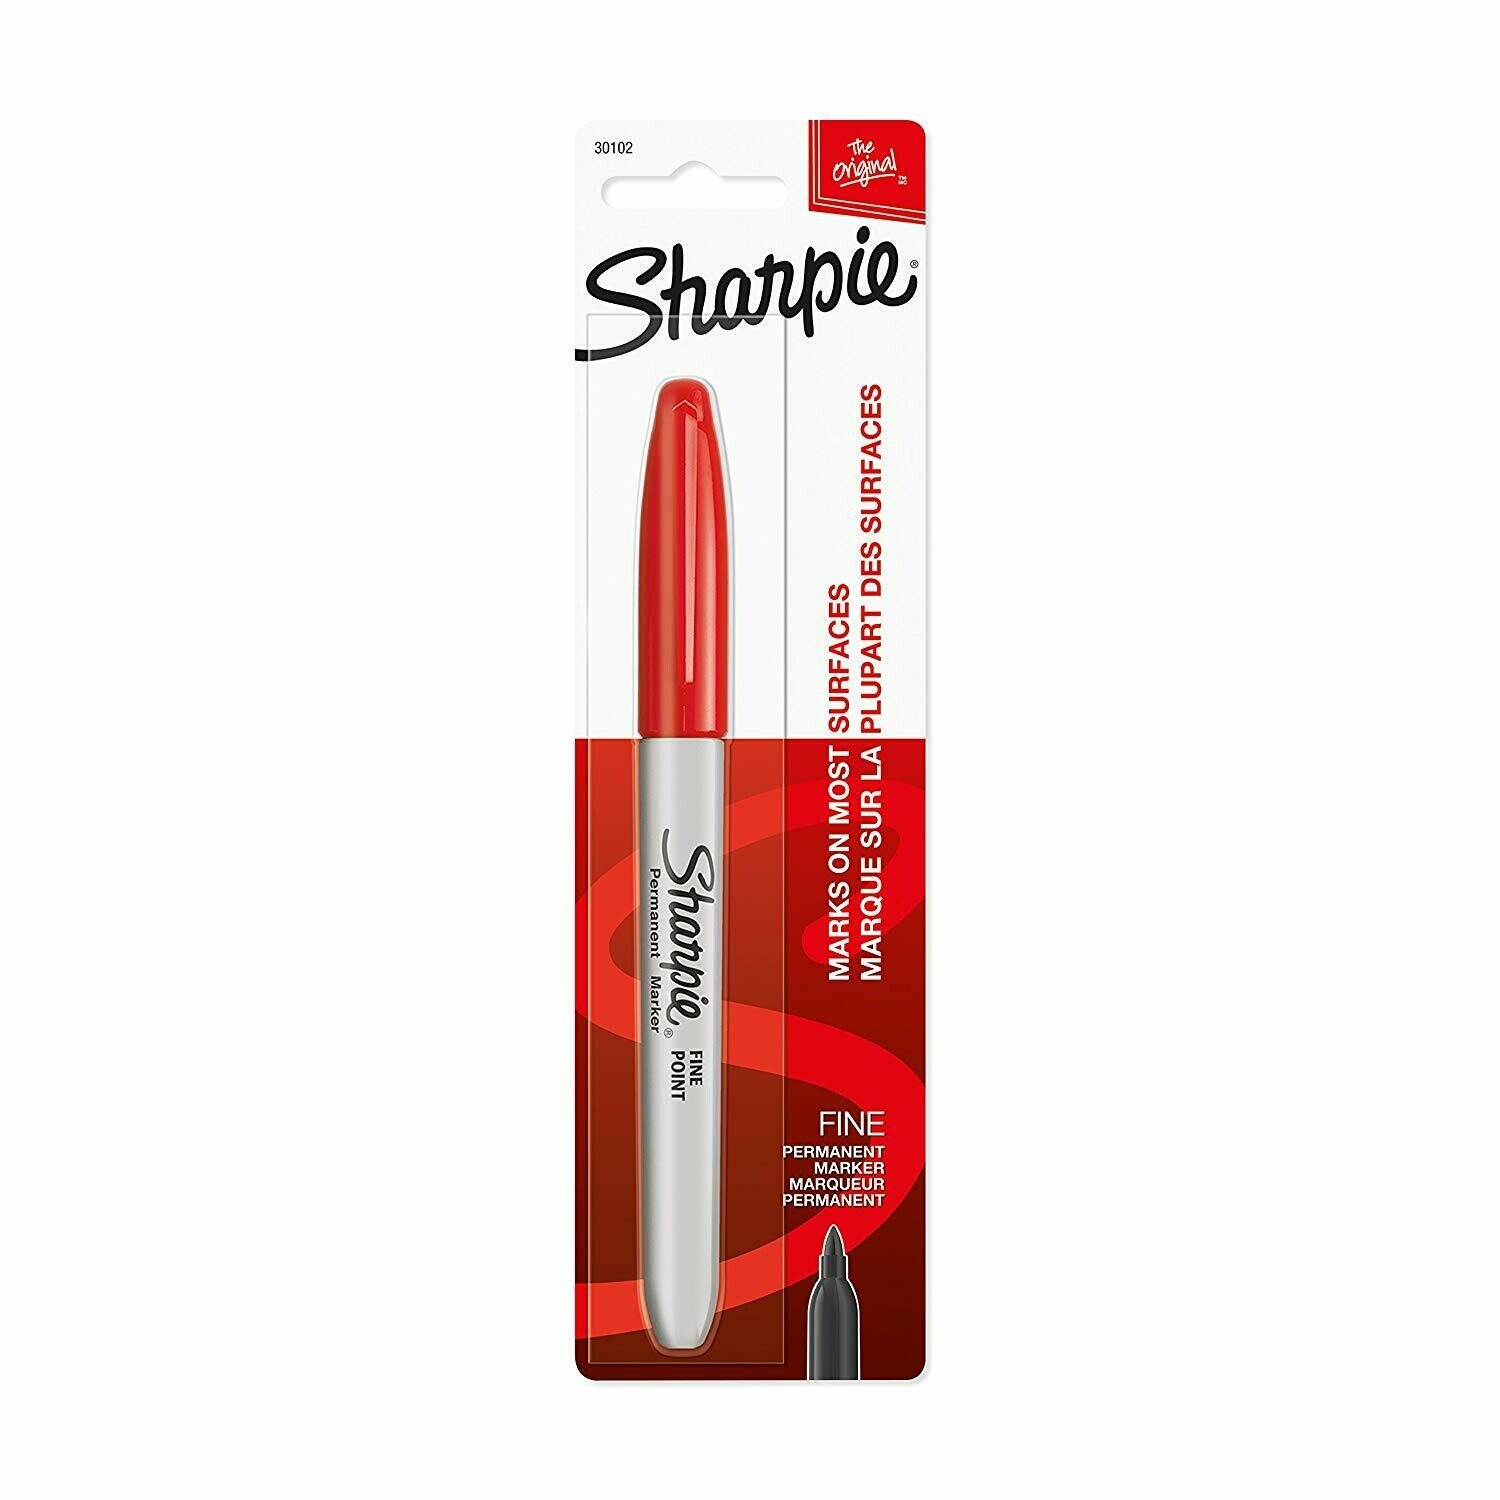 Sharpie / Fine Point Permanent Marker, Red Color, Pack of 1